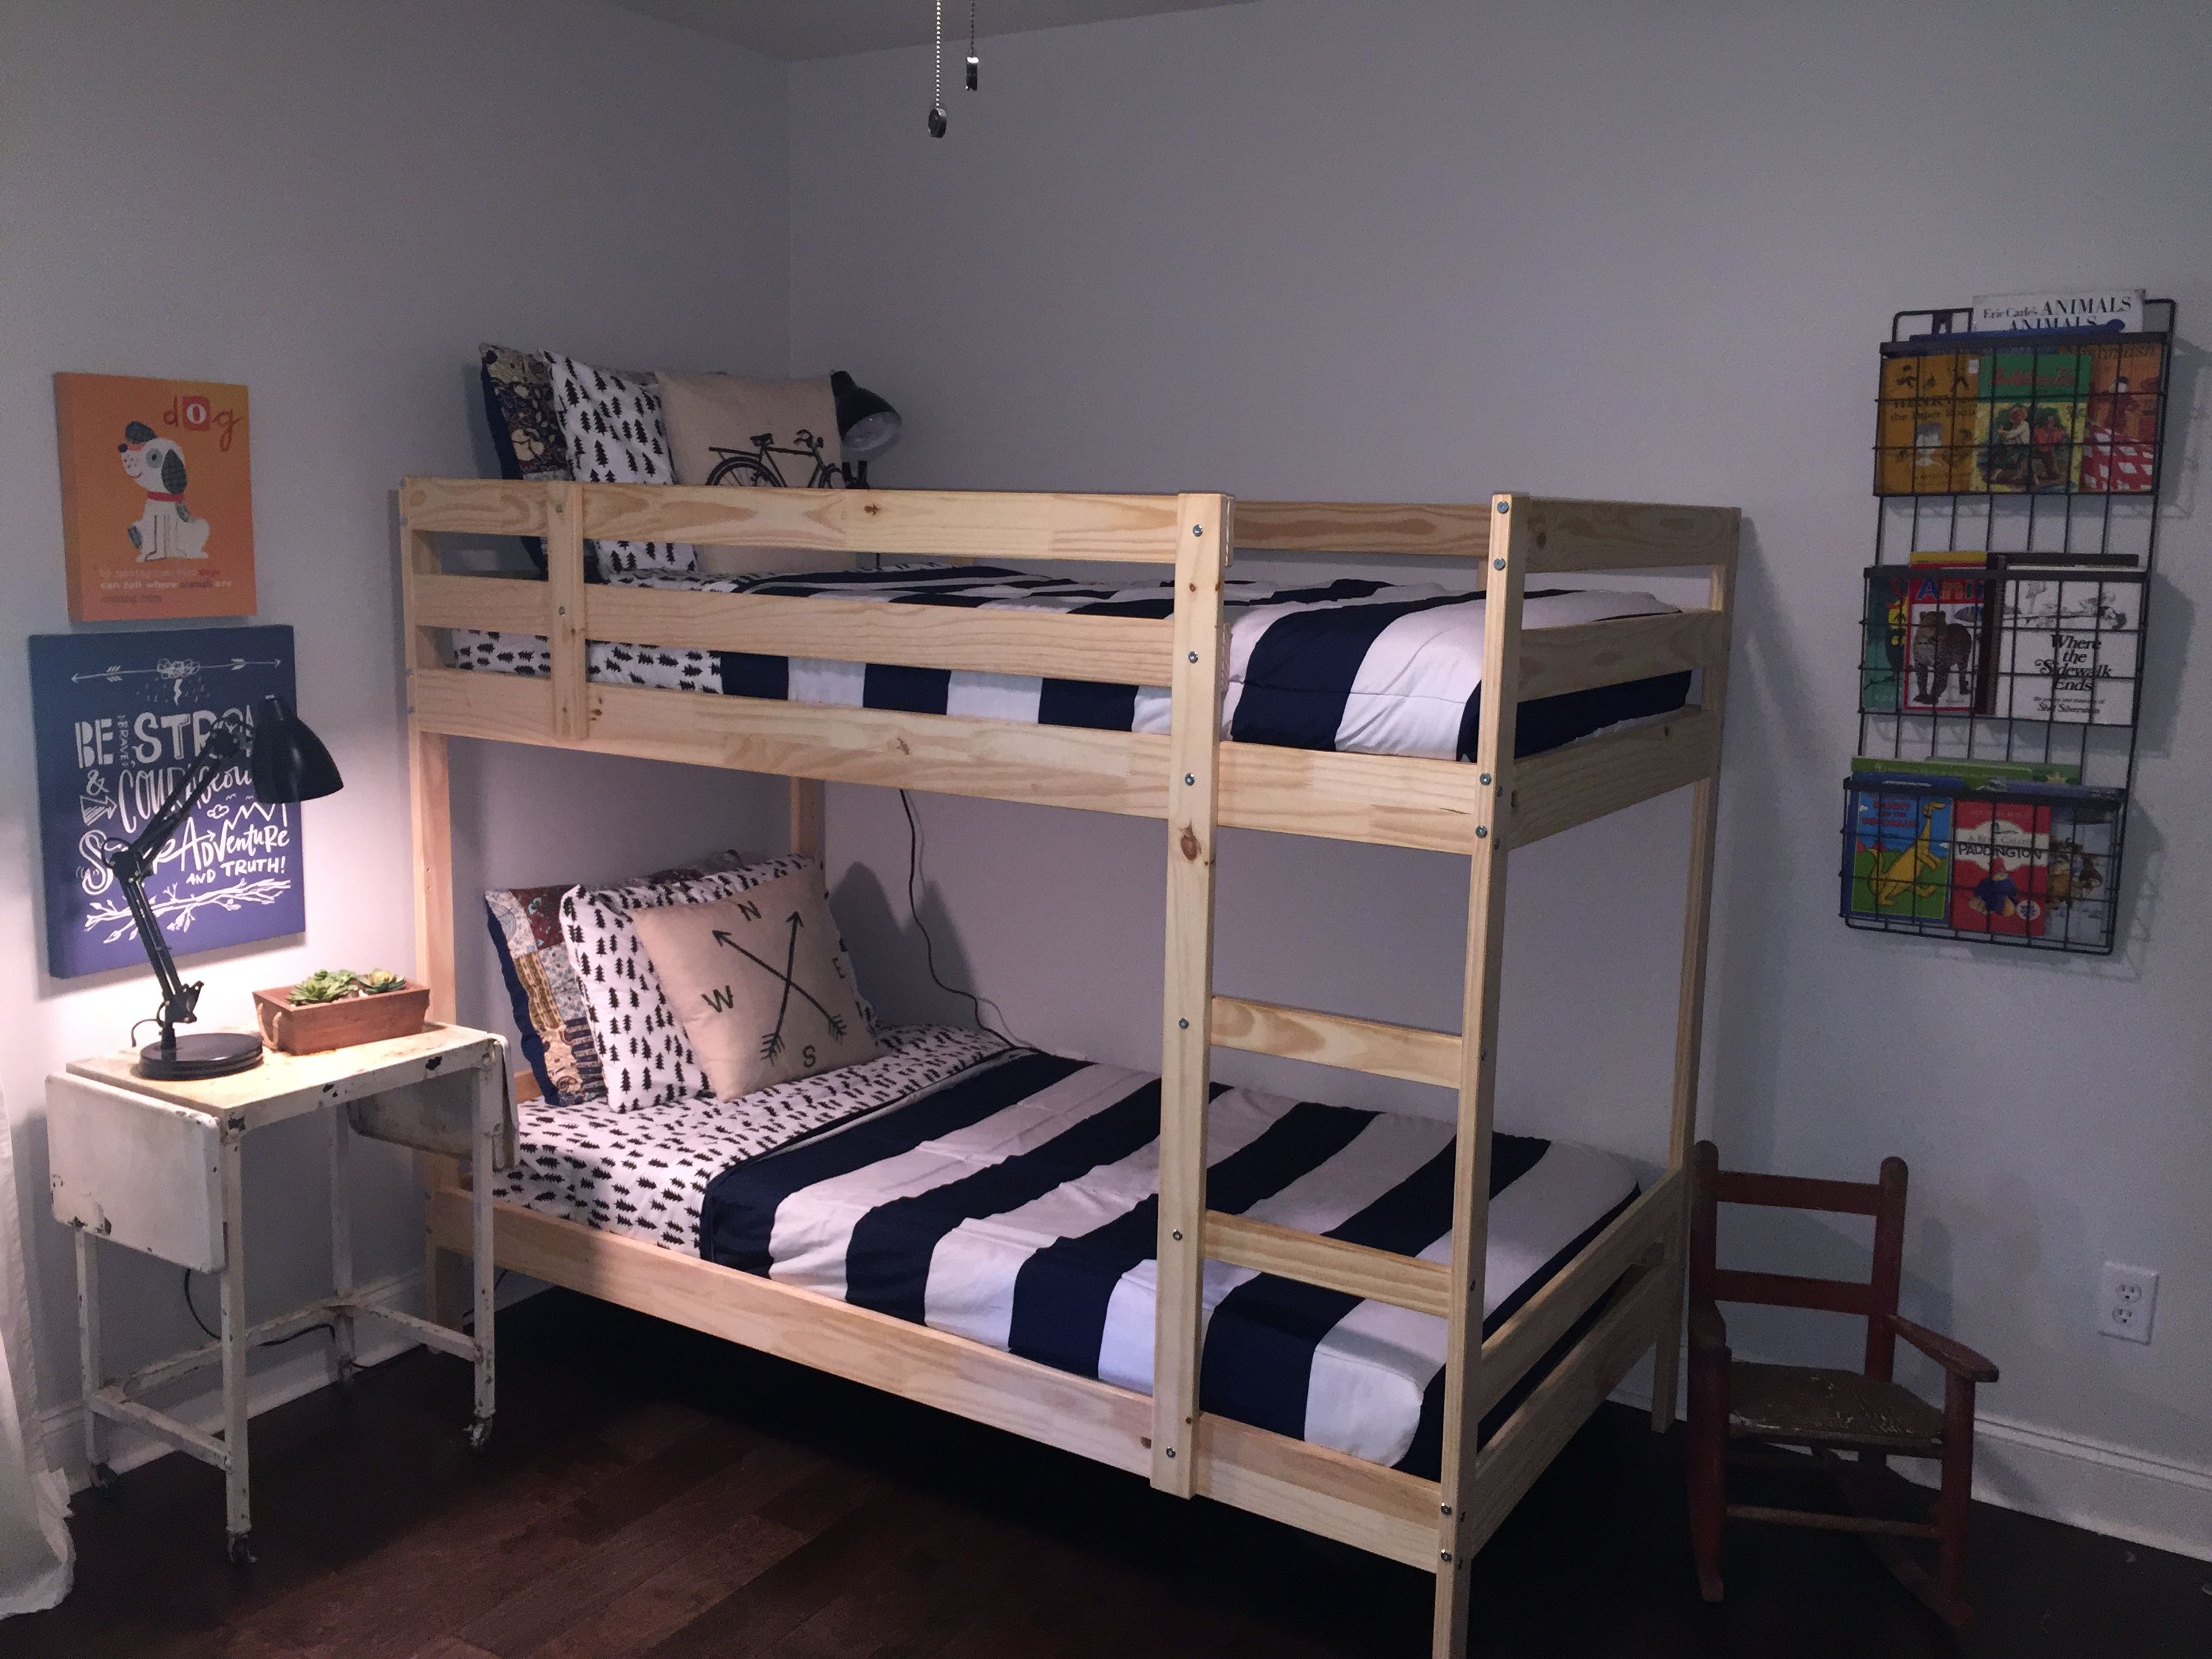 ikea mydal bunk beds, #adventure, shared boys room | boys room